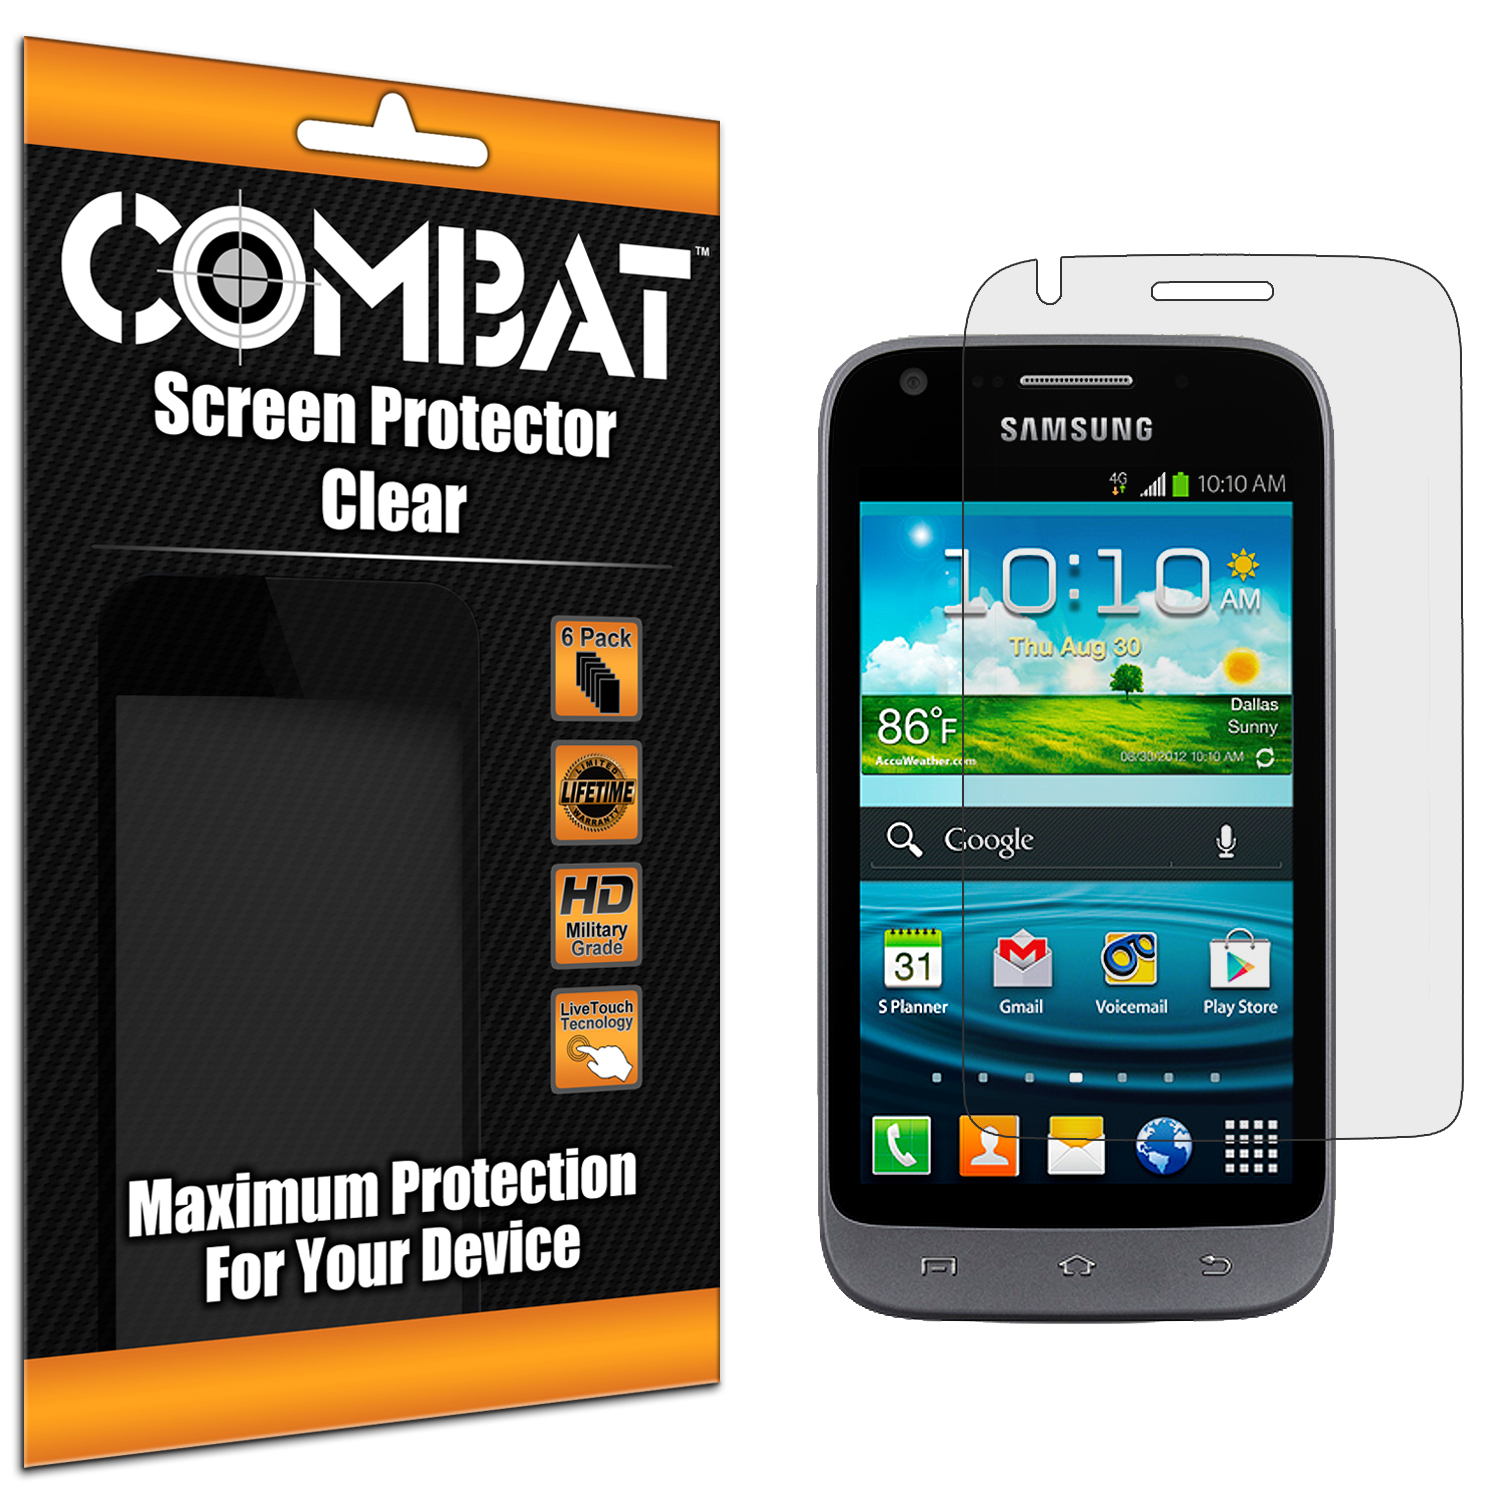 Samsung Galaxy Victory 4G Combat 6 Pack HD Clear Screen Protector